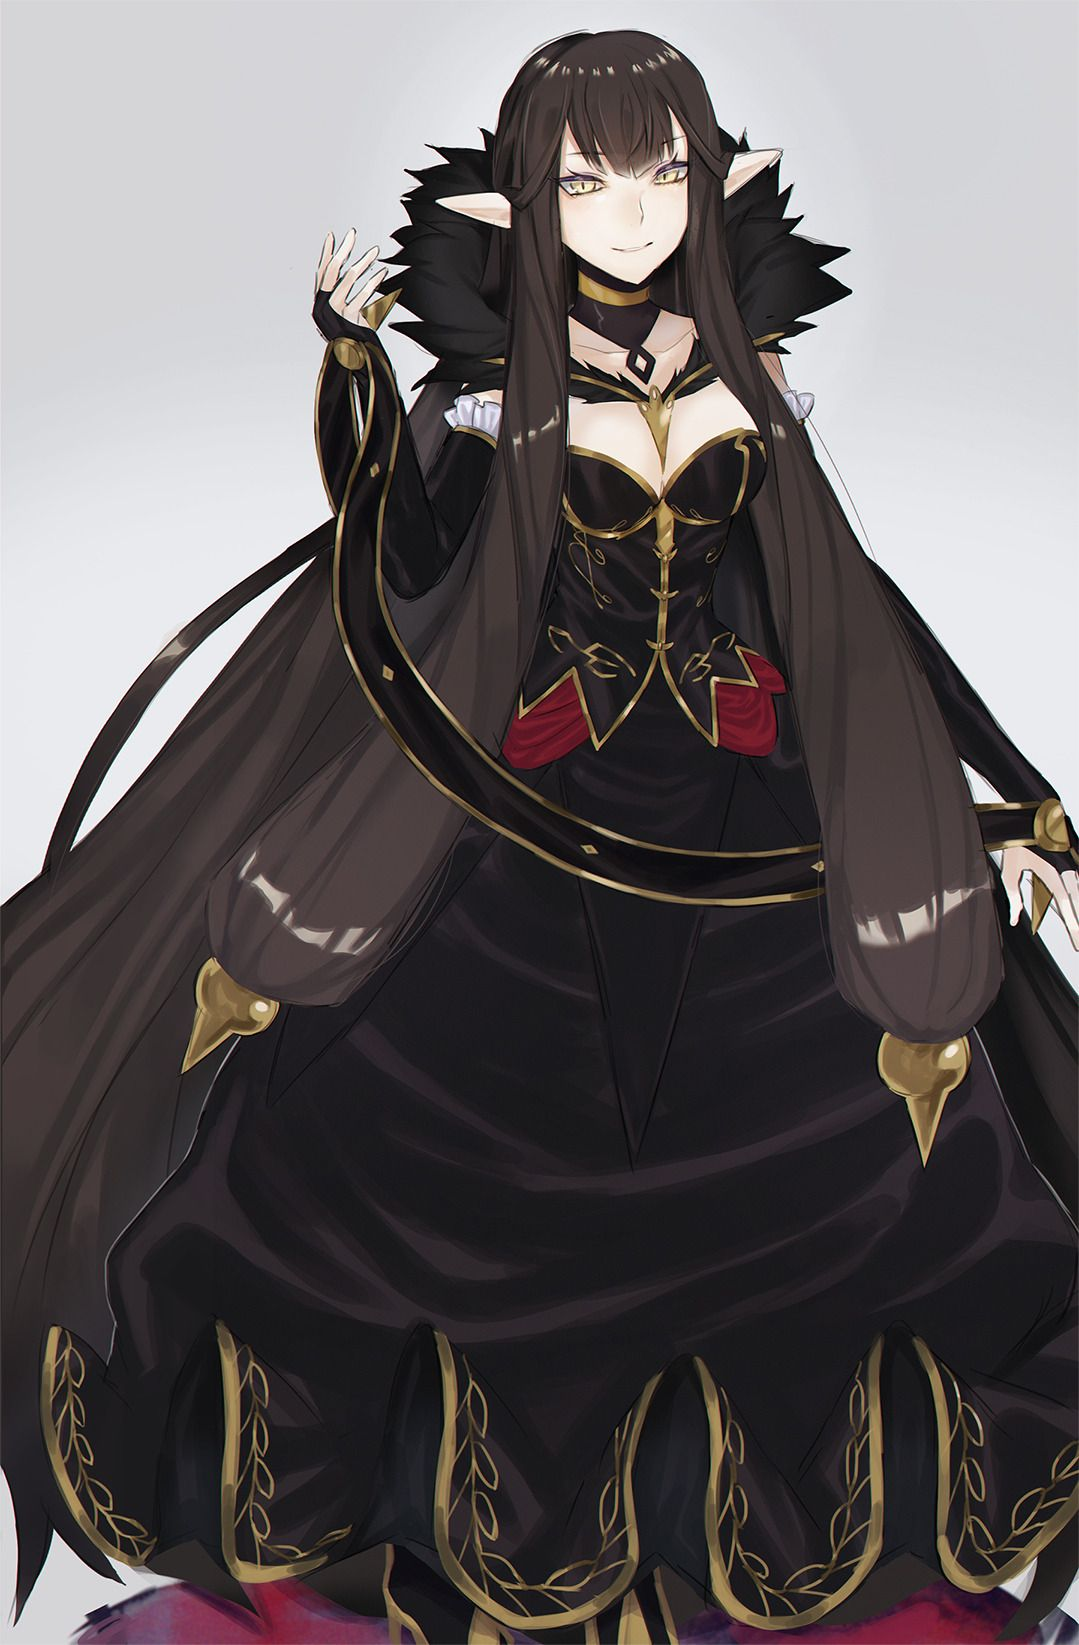 Fate/Nasuverse (Fate) image by 🔥Art Of Purp🔥 Semiramis fate